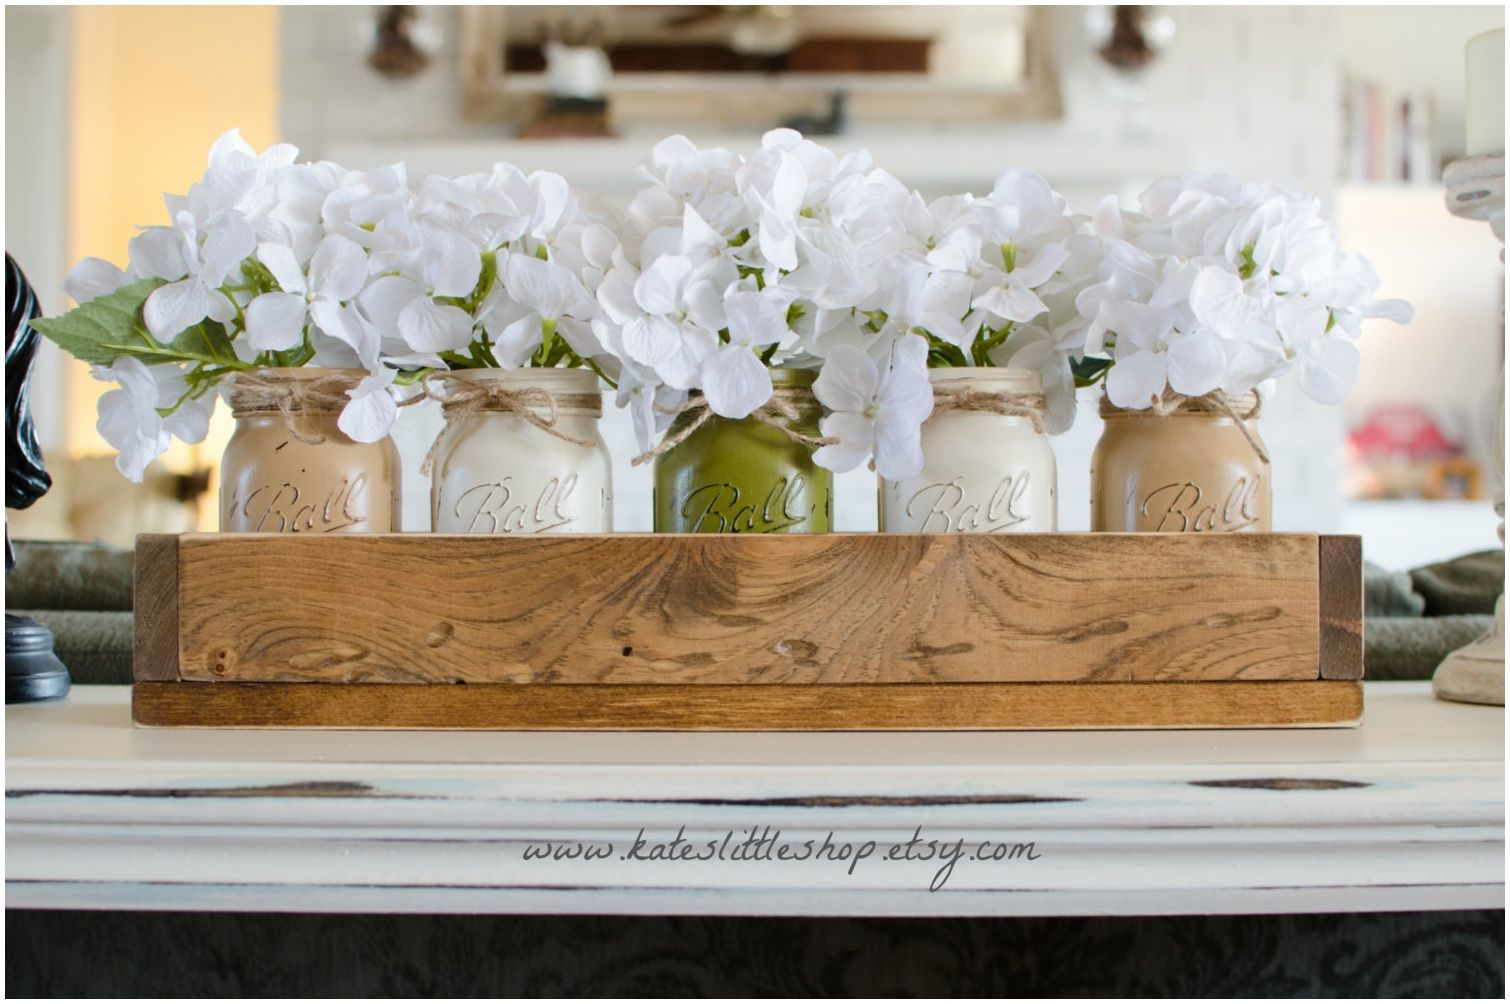 Famed Round Kitchen Table Decorating Ideas Decor Room Table Centerpiece Kitchen Table Ce Kitchen Table Centerpiece Dinning Room Centerpieces Table Centerpieces